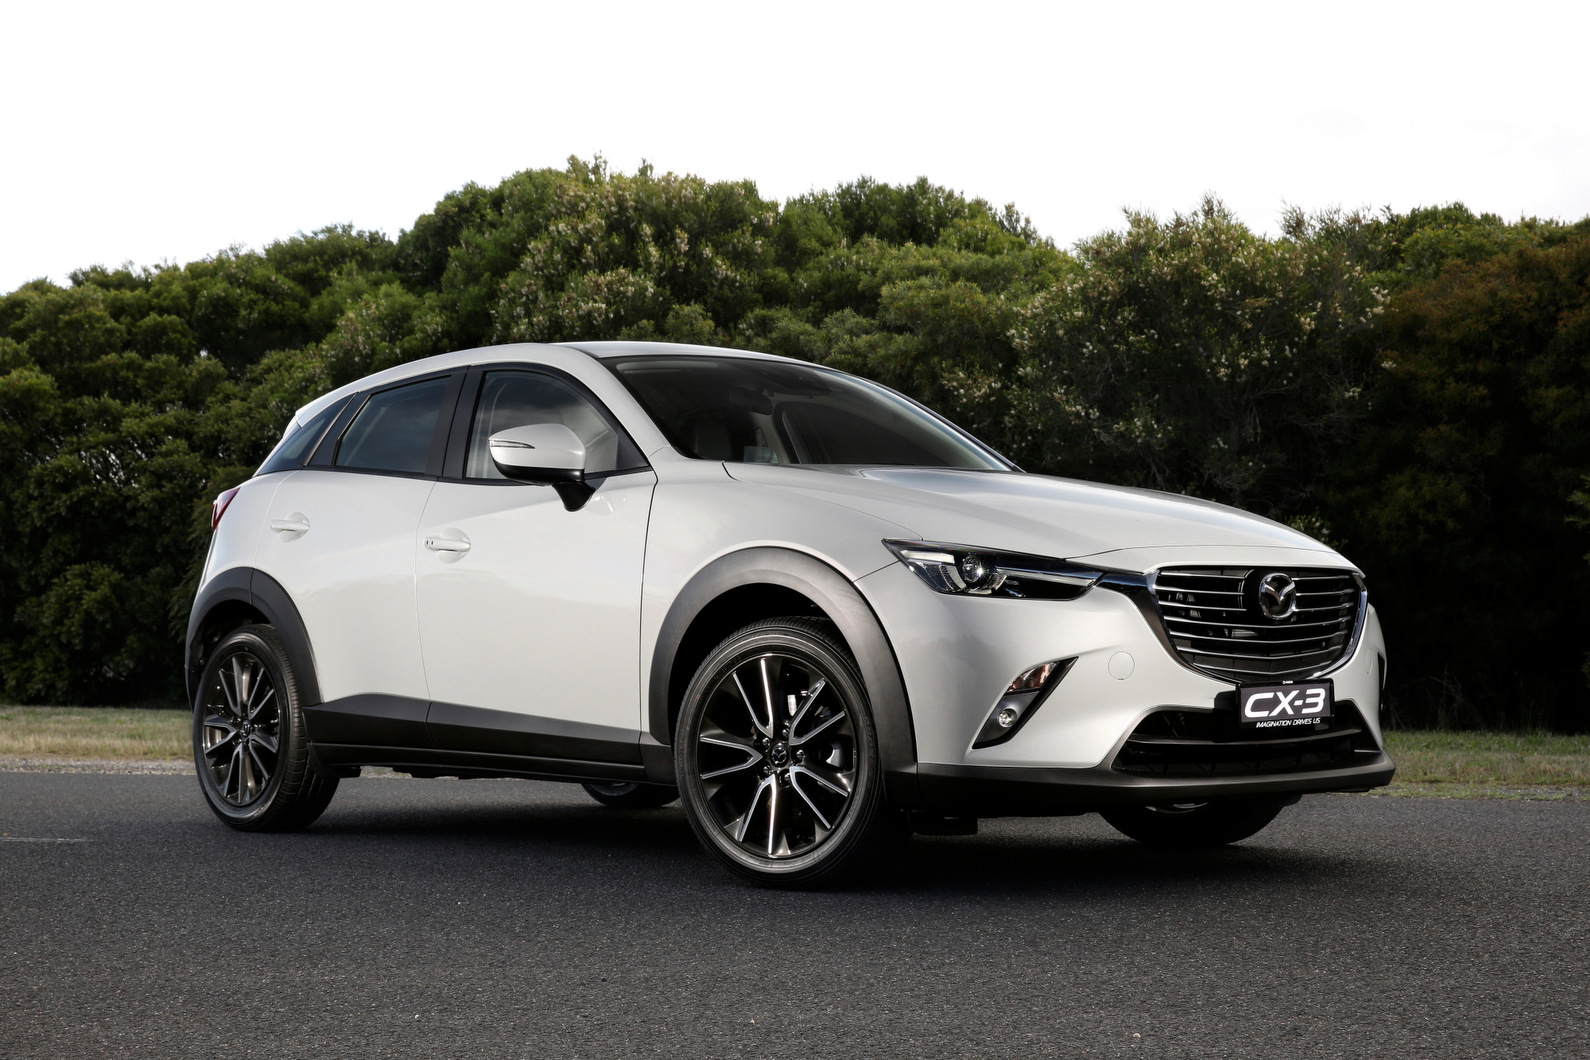 2015 mazda cx 3 review by autocar mazda cx3 forum. Black Bedroom Furniture Sets. Home Design Ideas